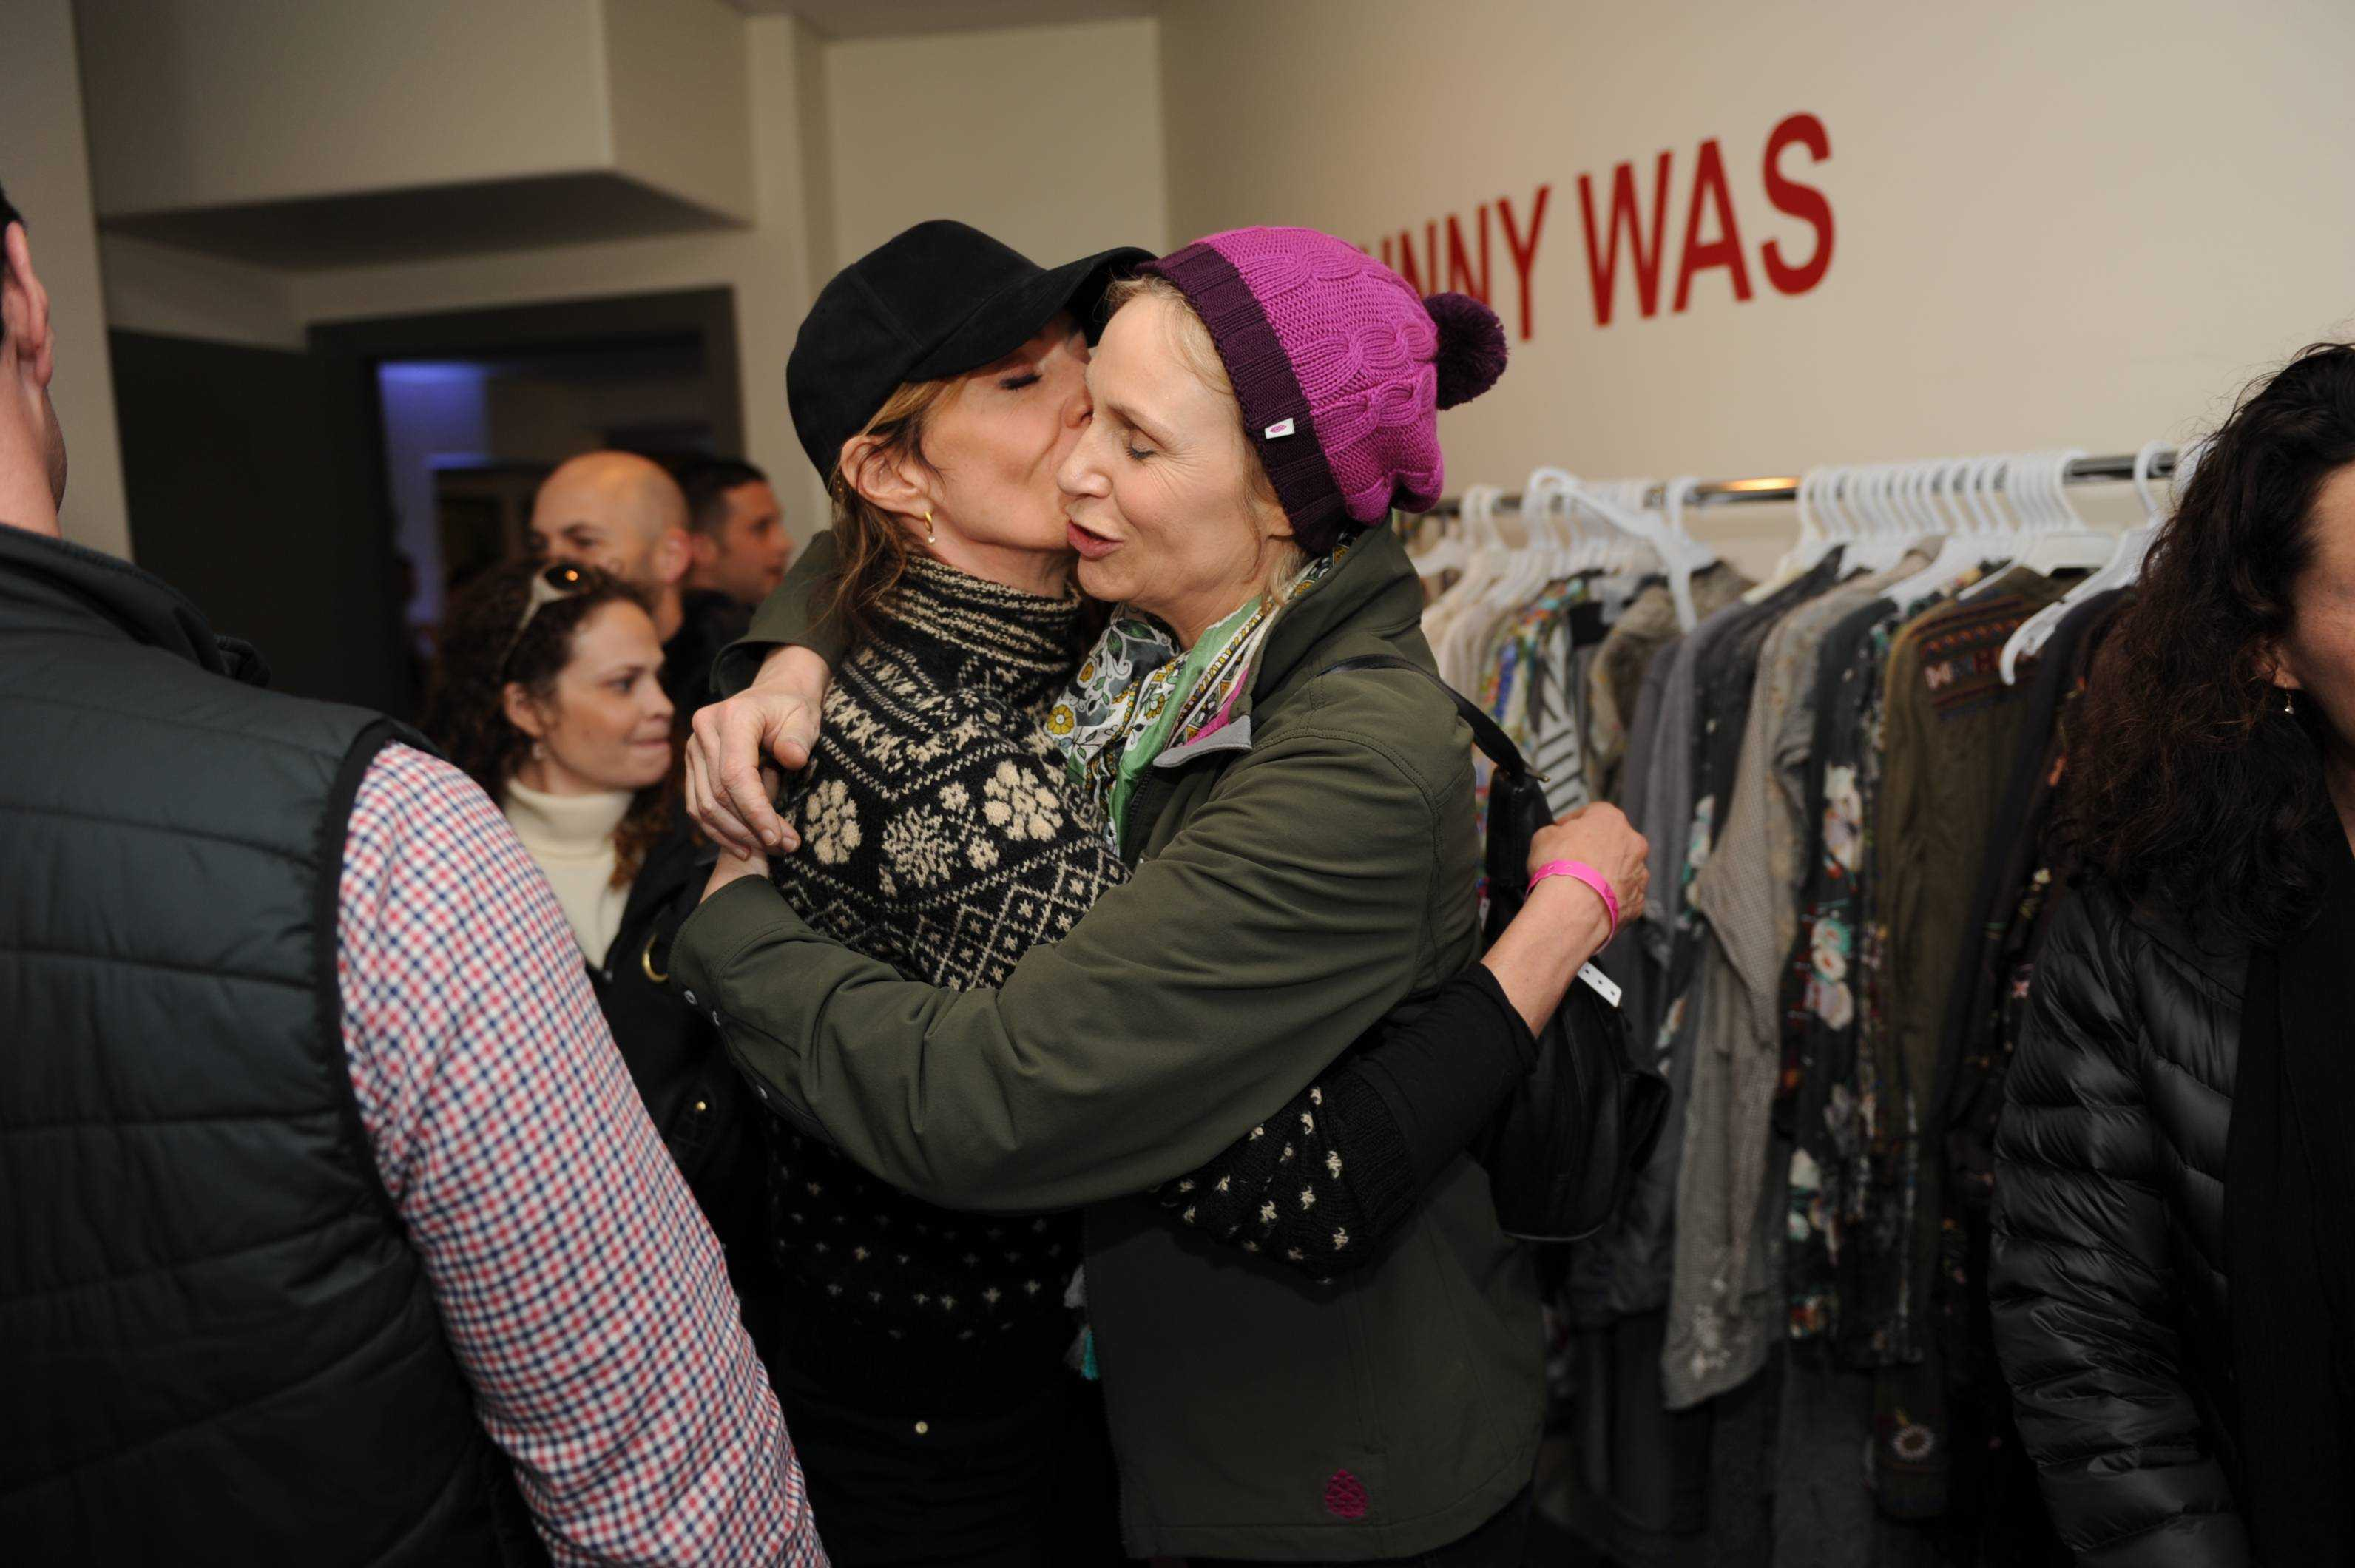 Allison Janney and Jane Lynch hugging at the Miami Lounge at Sundance